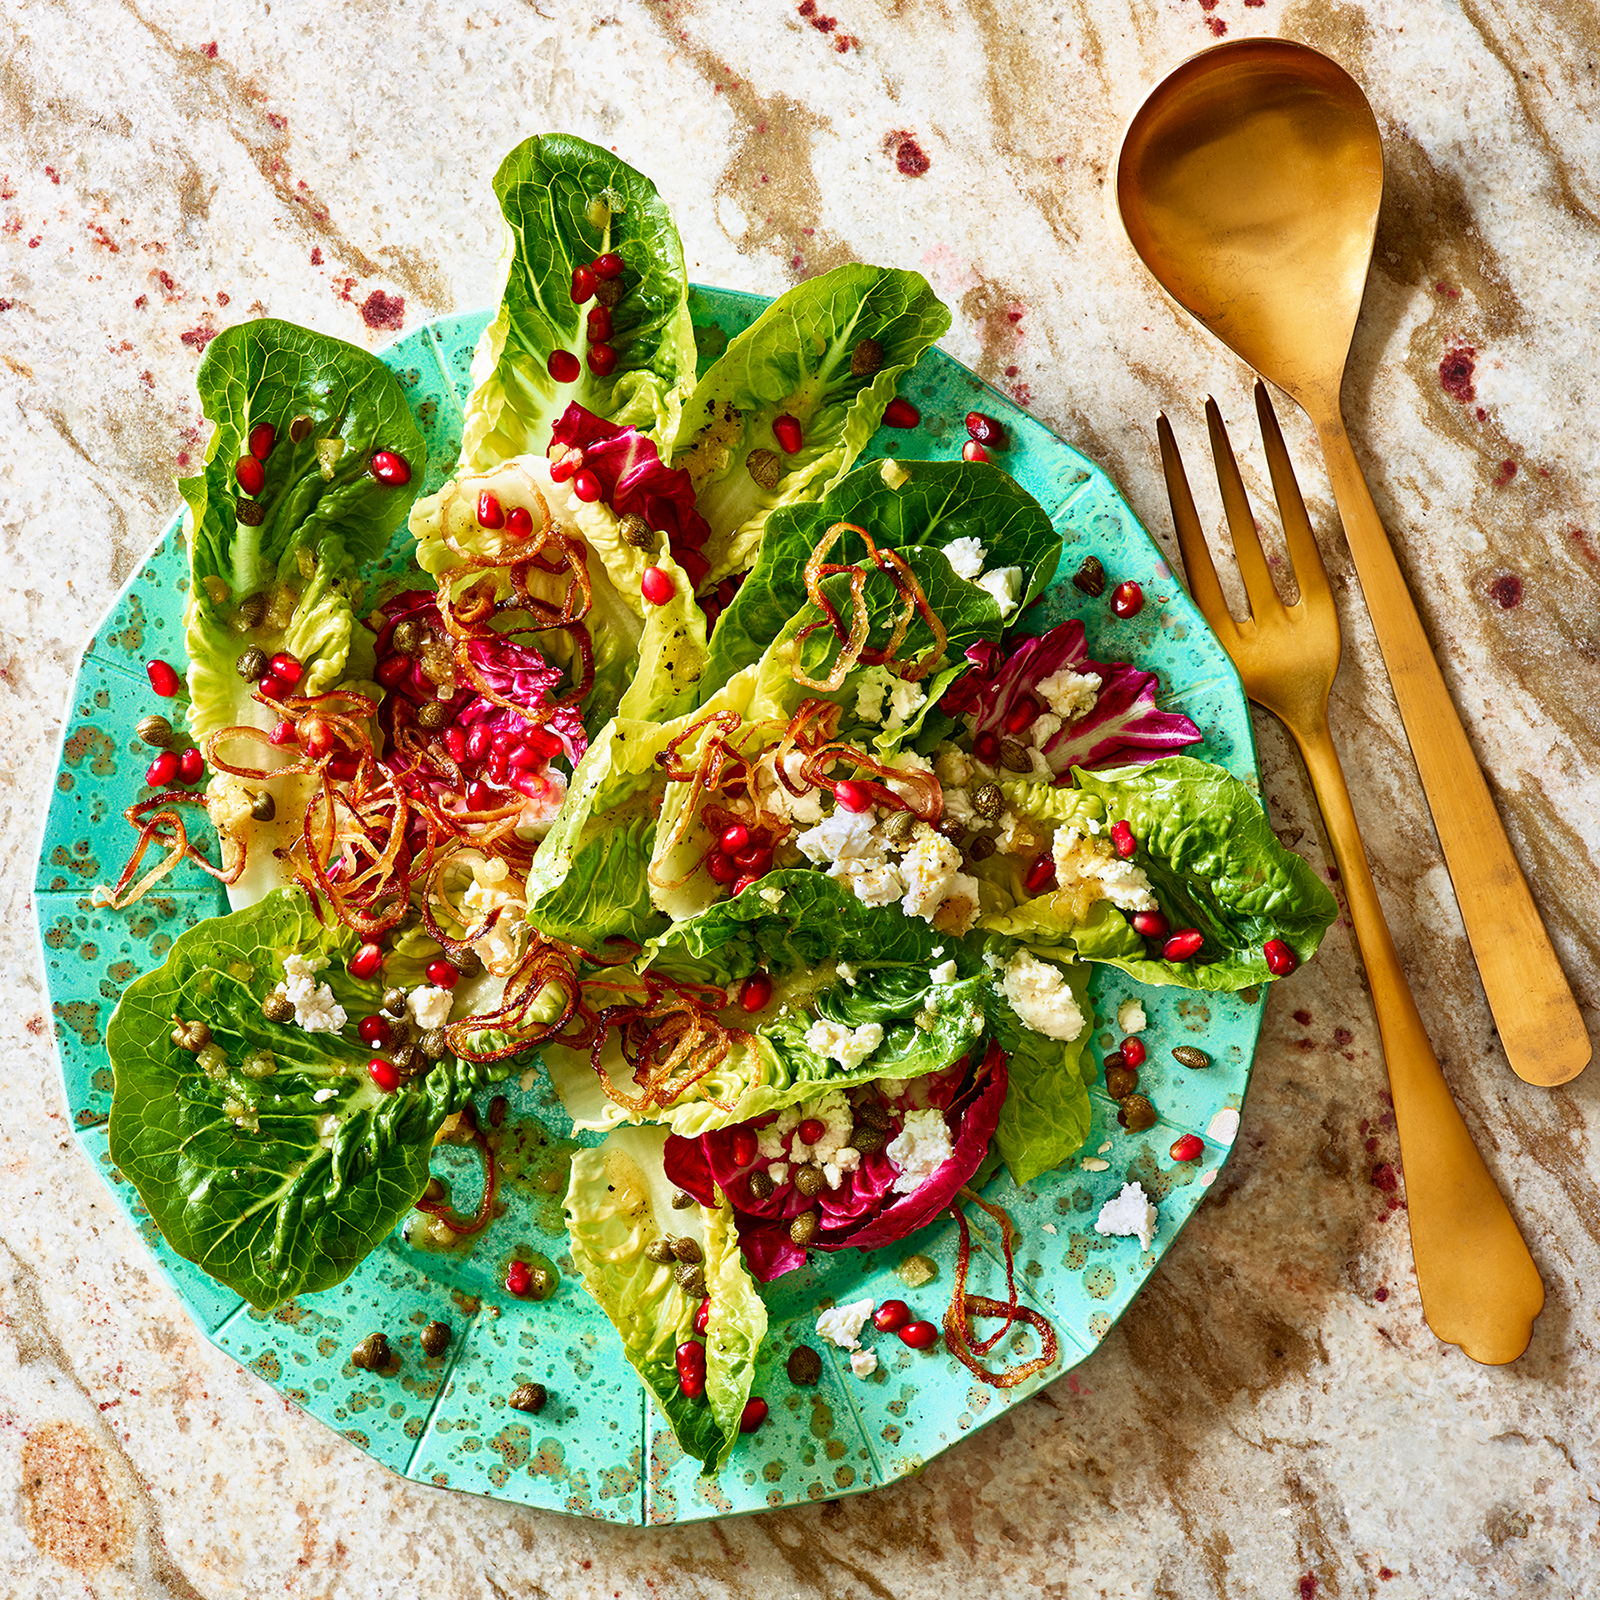 Mixed Greens with Preserved Lemon Dressing & Feta